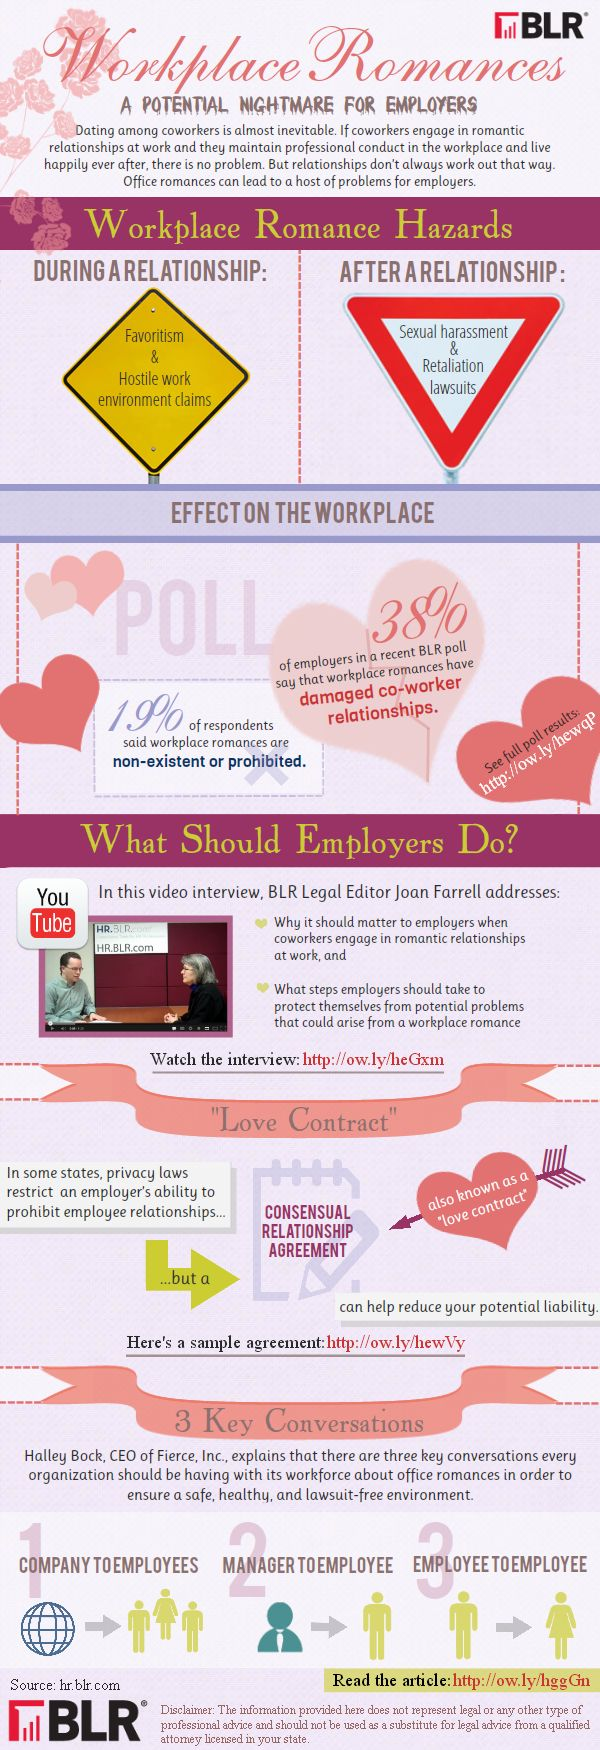 statistics for dating in the workplace